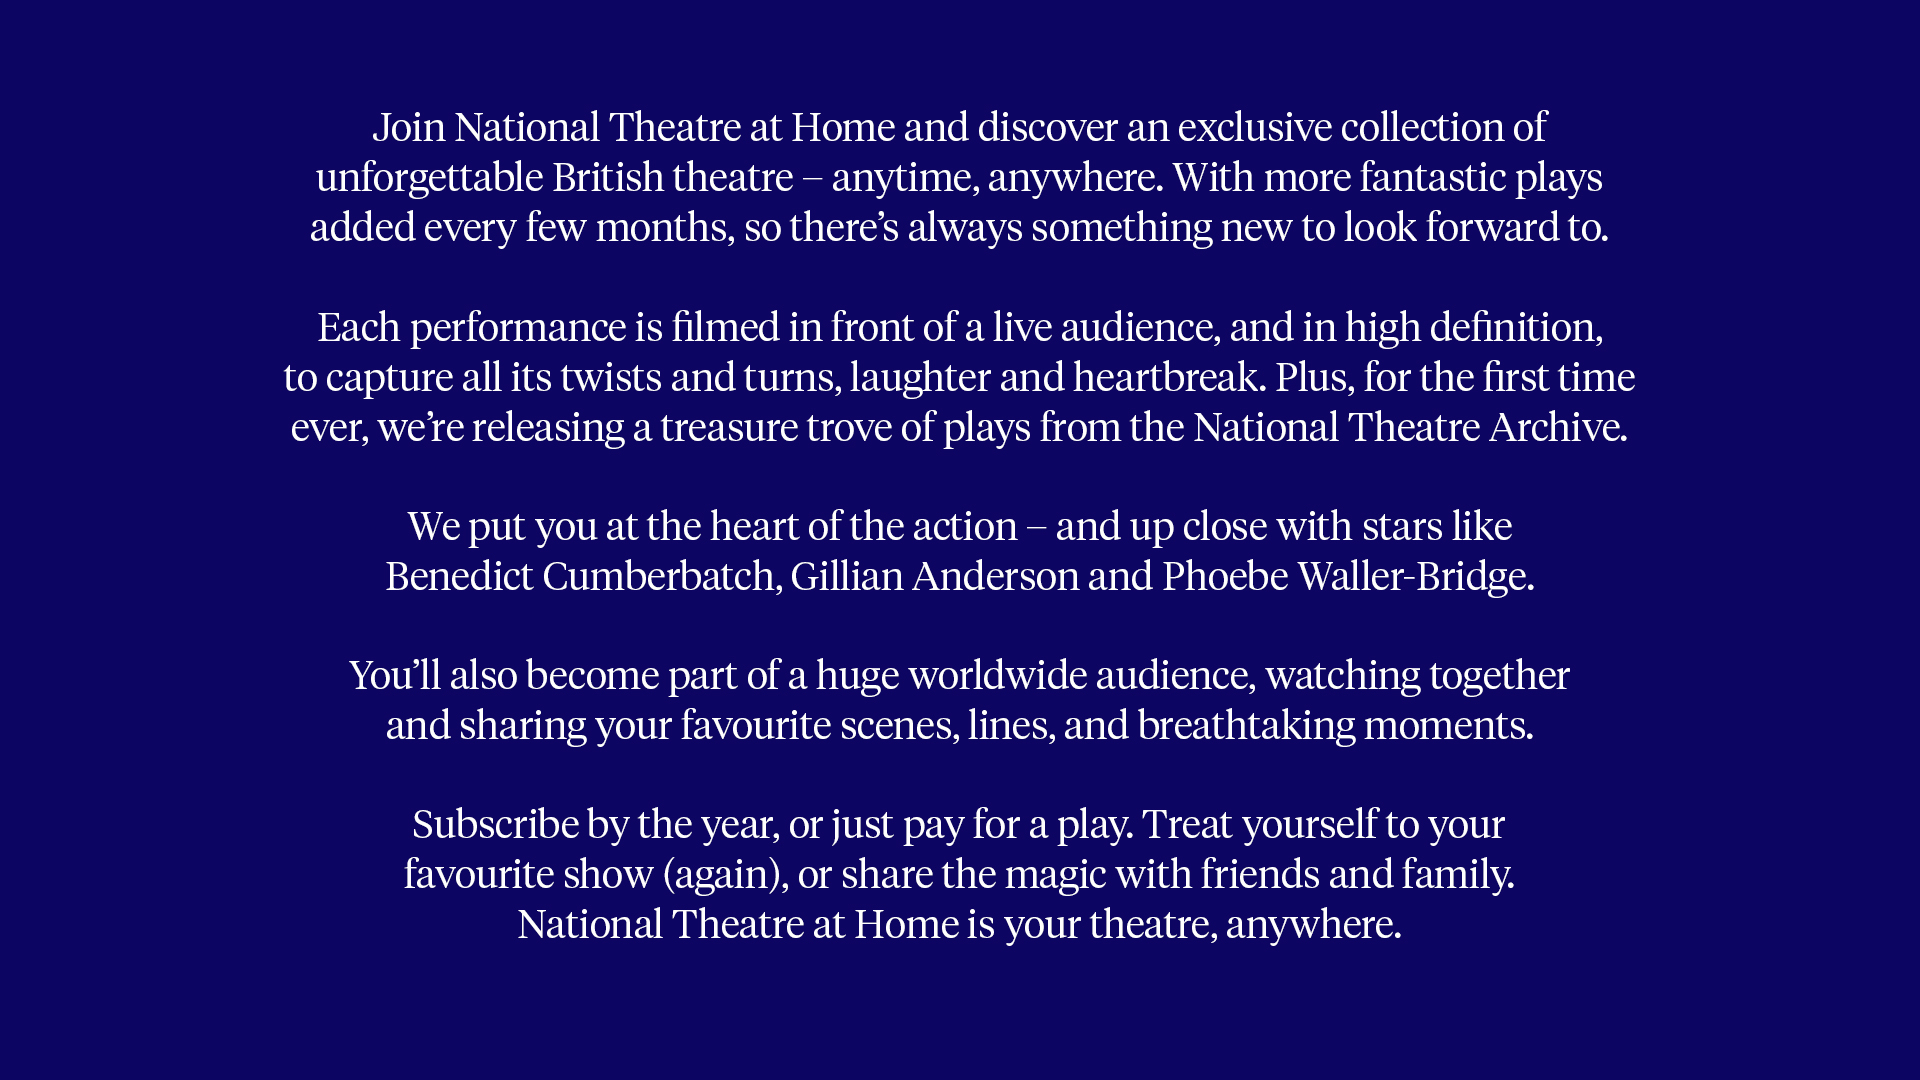 National Theatre at Home copywriting